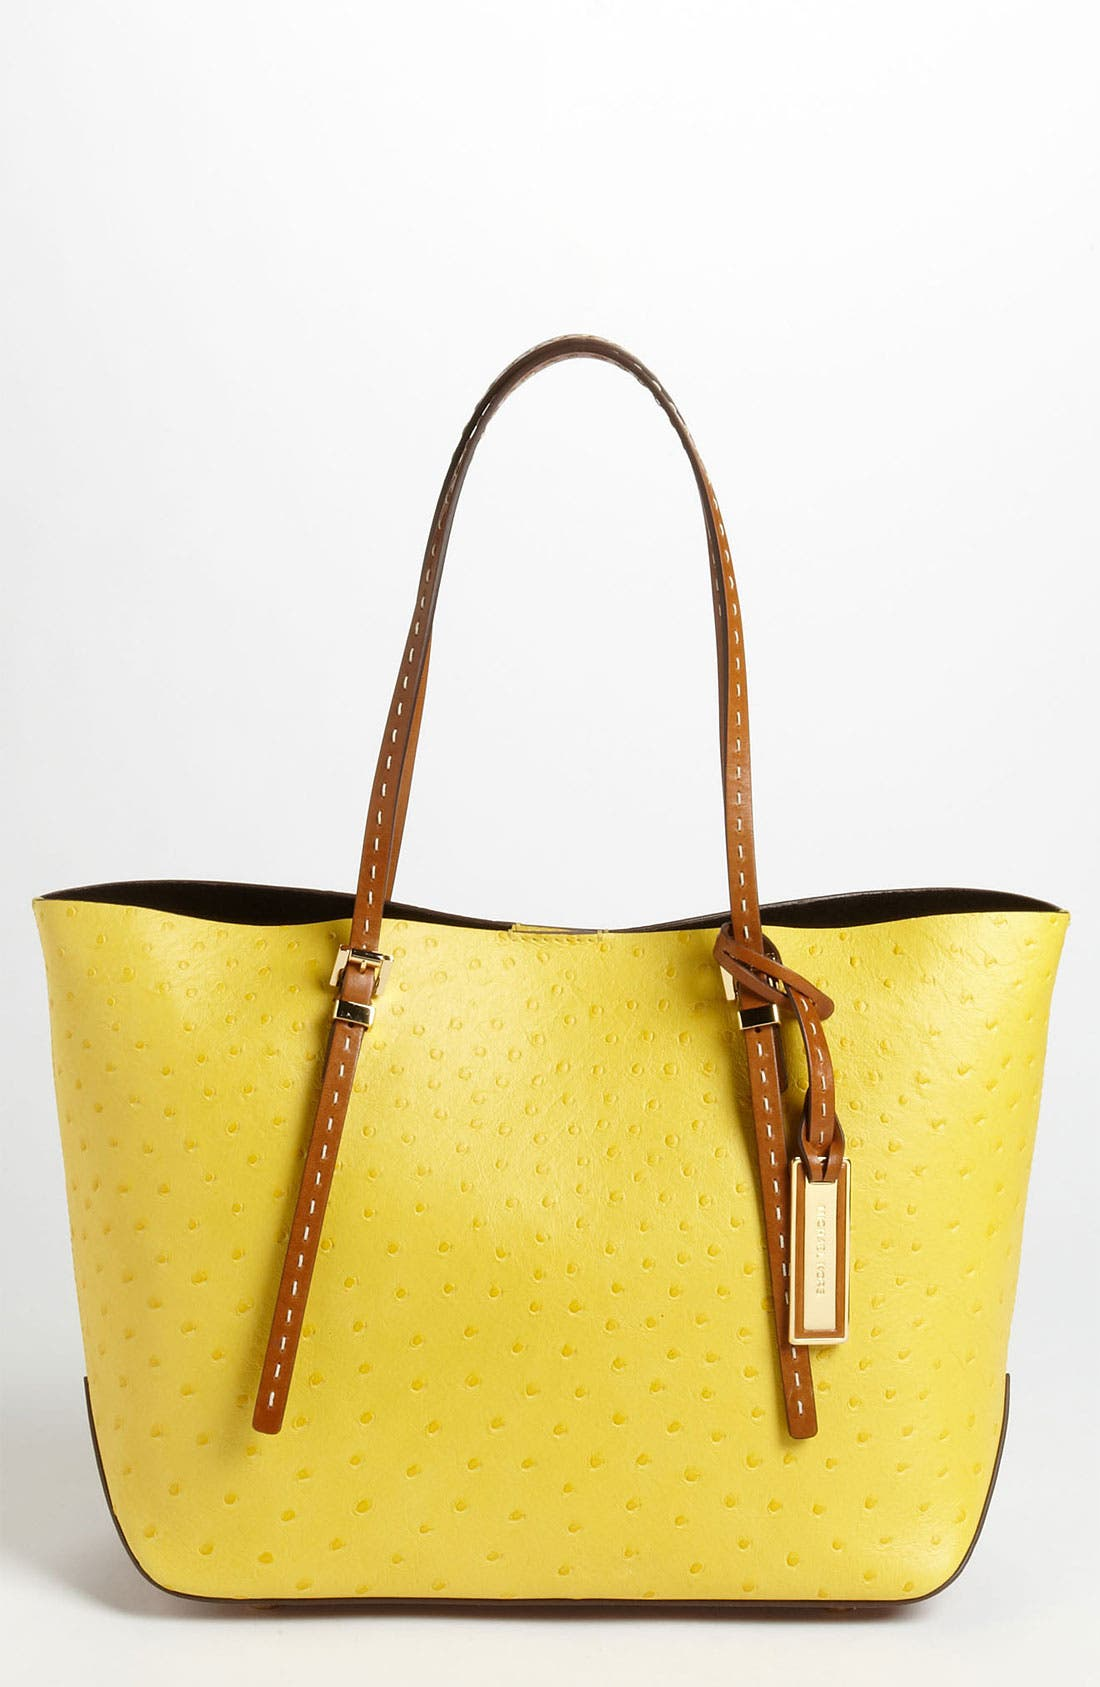 Main Image - Michael Kors 'Gia - Small' Ostrich Embossed Leather Tote